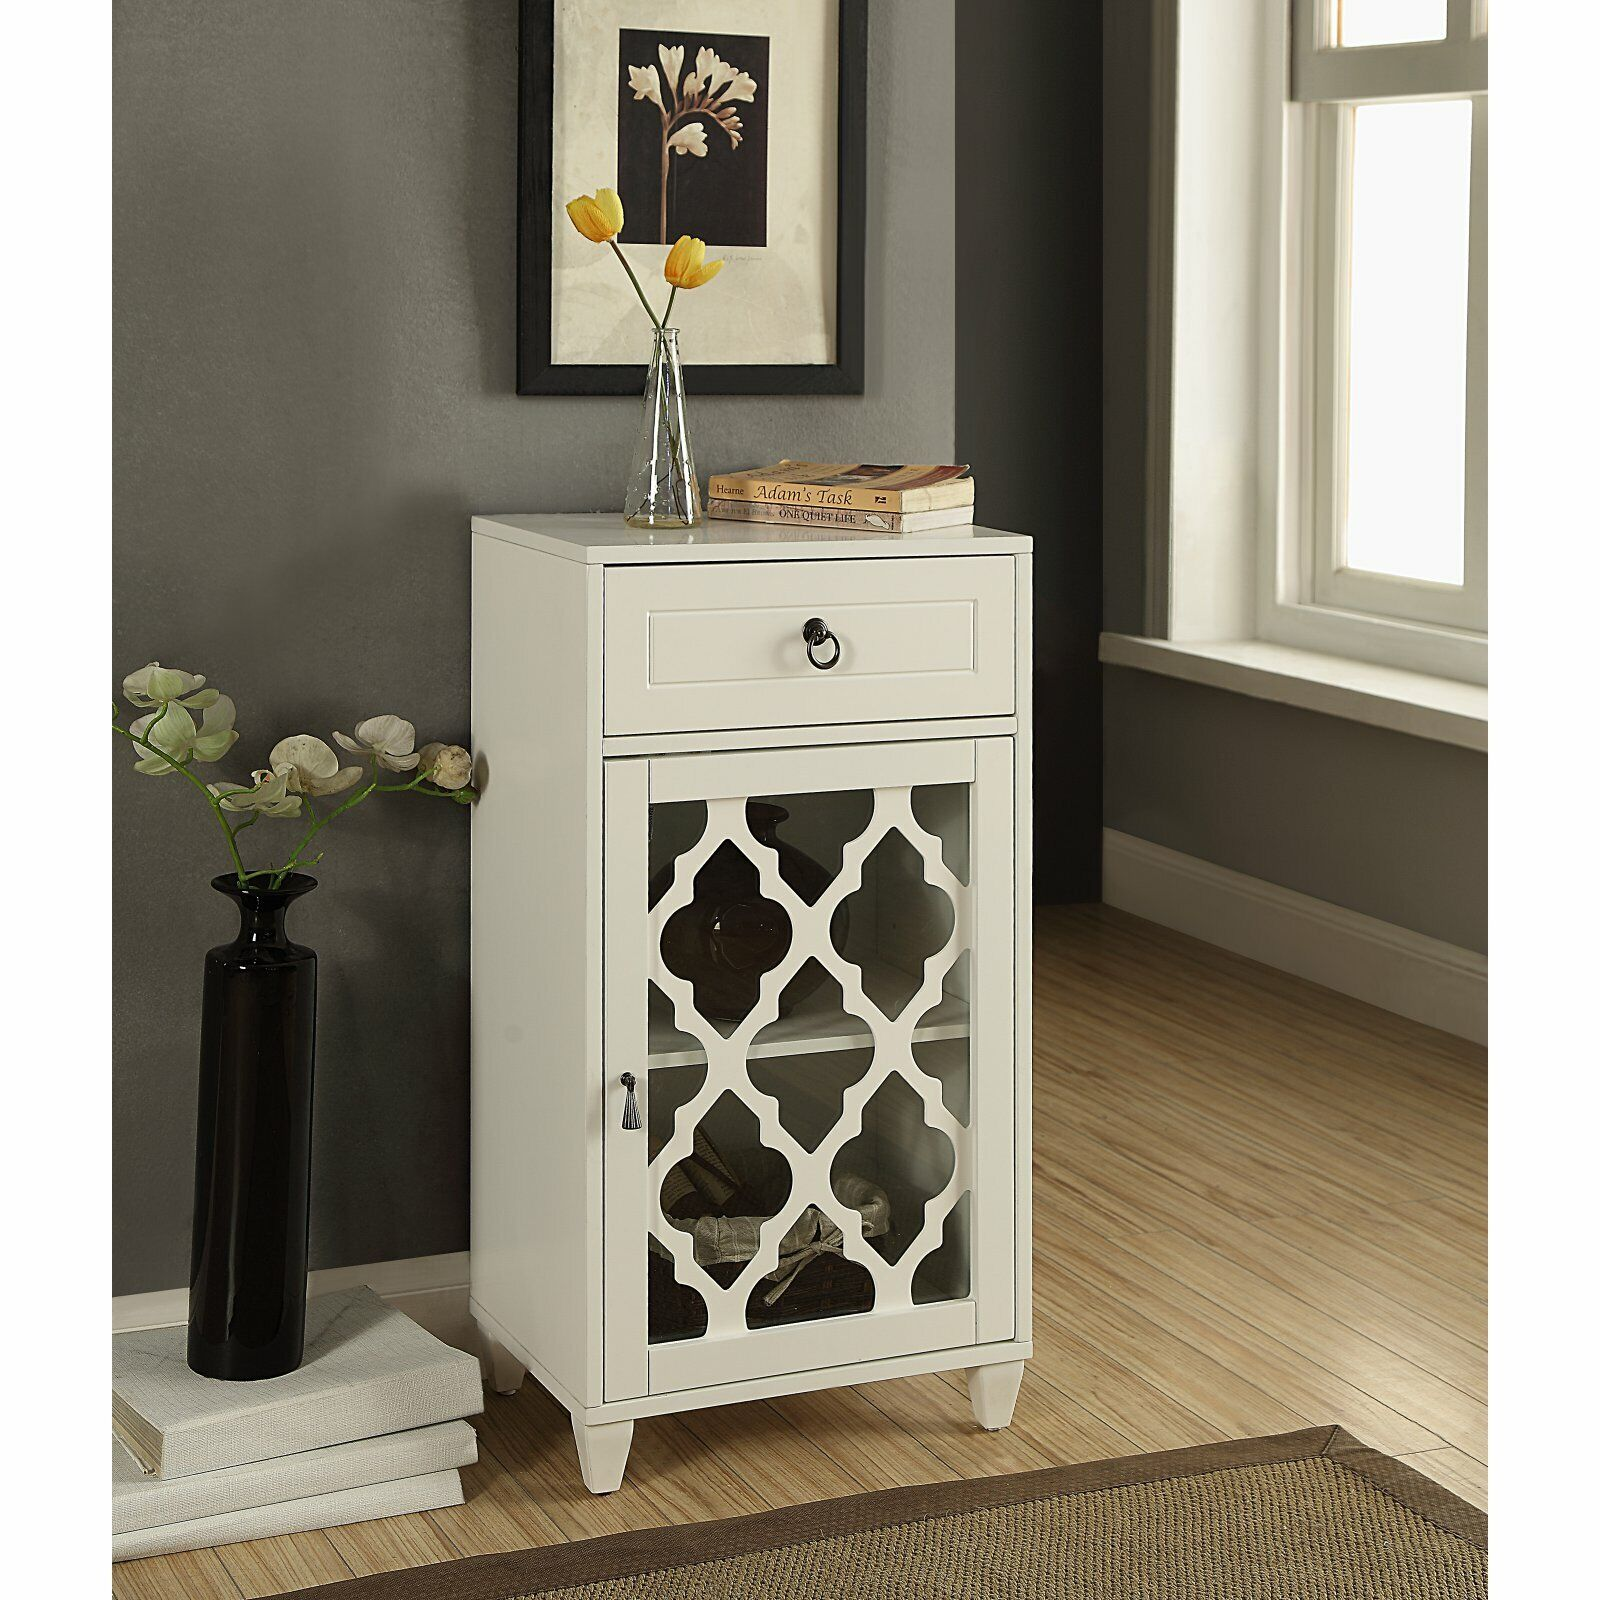 Floor Cabinet Night Stand Small White Wood With Glass Doors Top